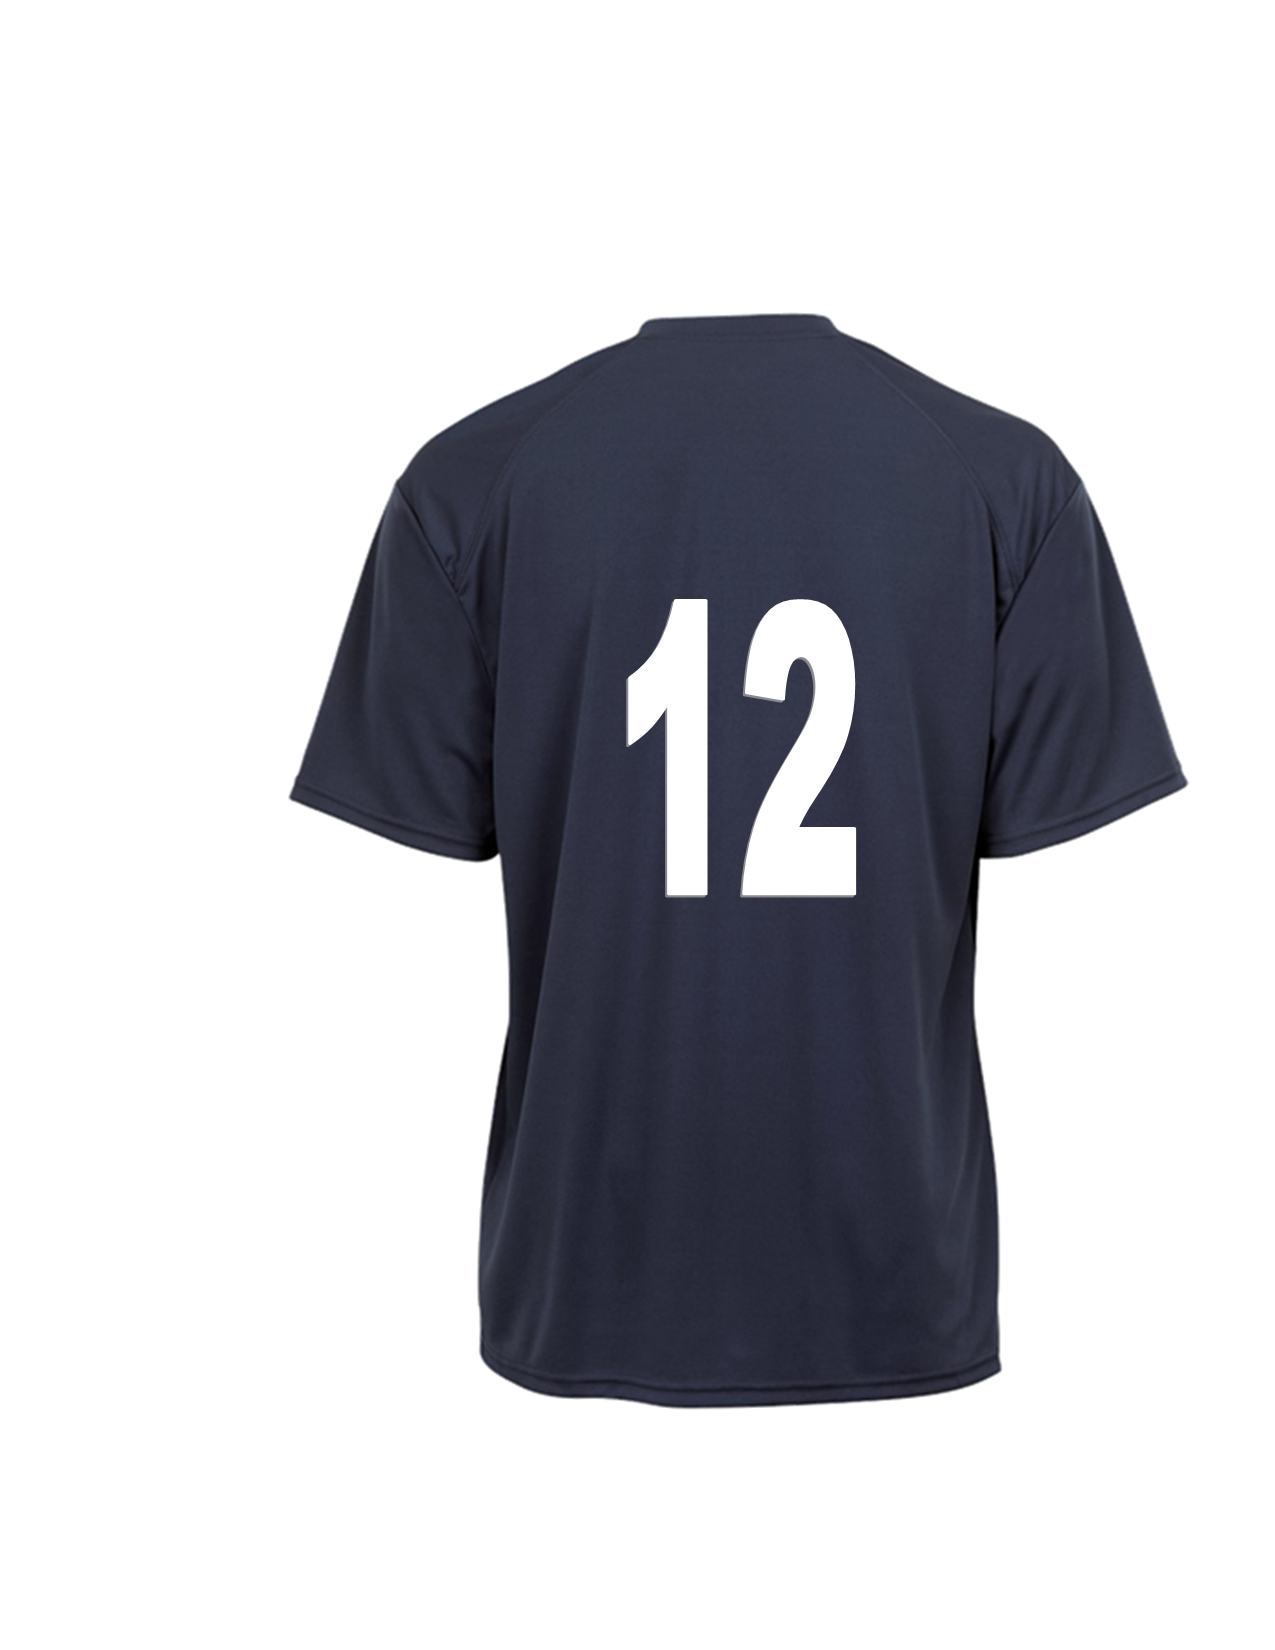 C2 TEE WITH PLAYER NUMBER ON BACK